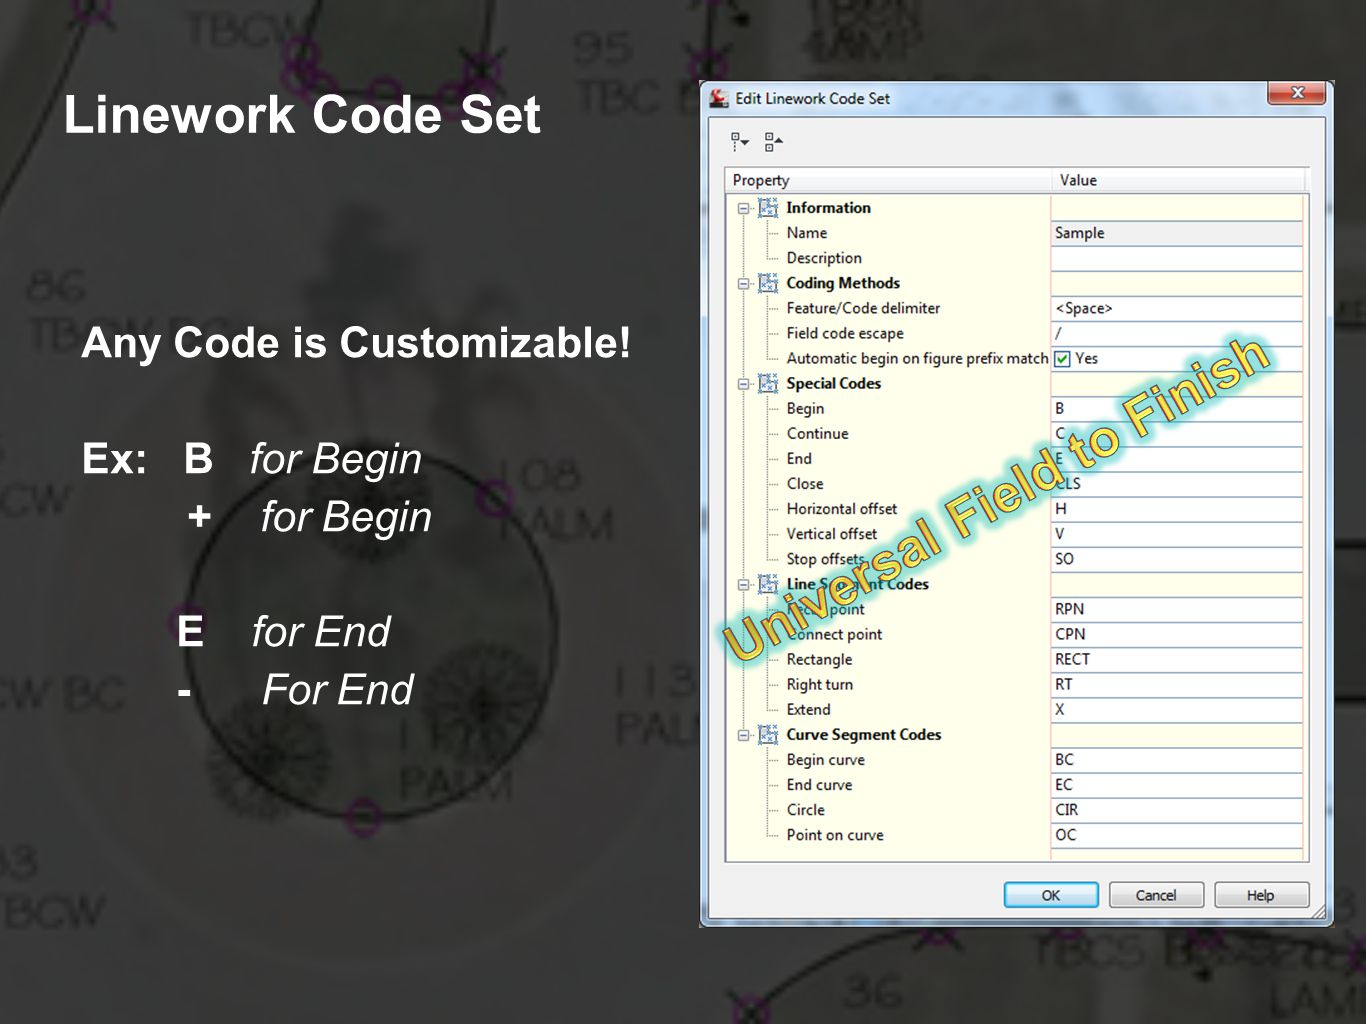 Linework Code Set Any Code is Customizable! Ex: B for Begin + for Begin E for End - For End